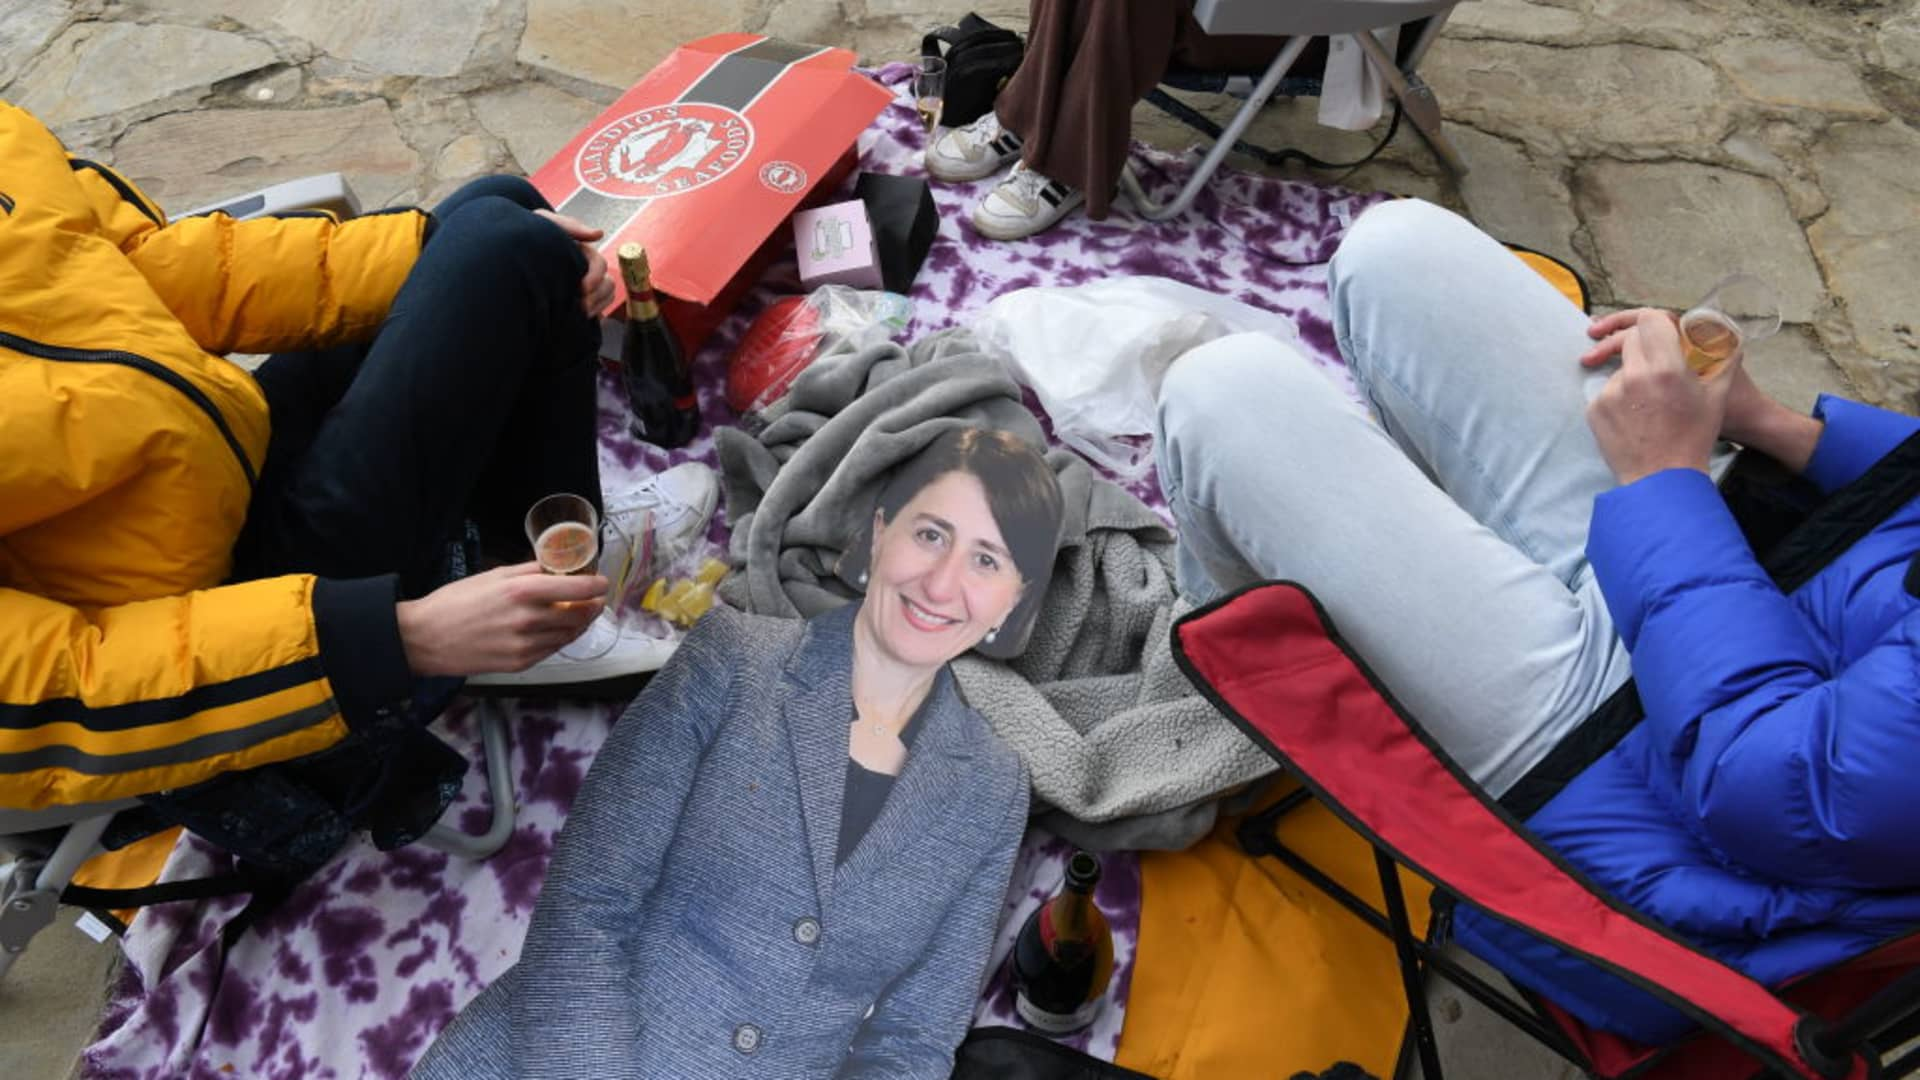 A life sized cardboard cutout of the Premier of New South Wales, Gladys Berejiklian sits on the floor beside some friends having a celebratory picnic in the suburb of Kirribilli on September 13, 2021 in Sydney, Australia.